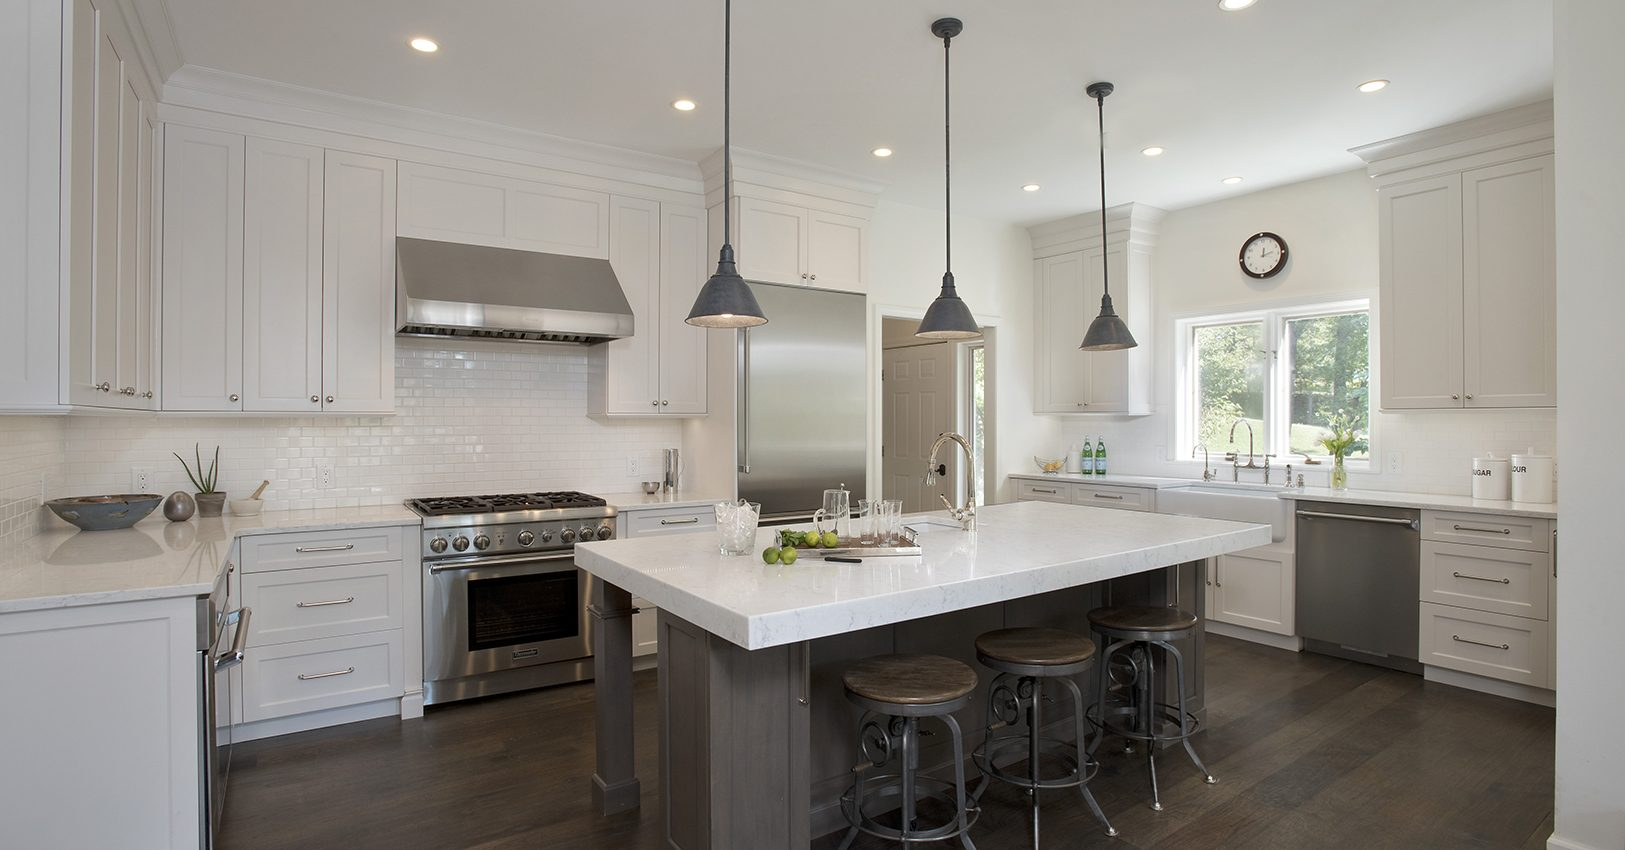 Grabill kitchen cabinetry in white pepper with special finish on island cabinets